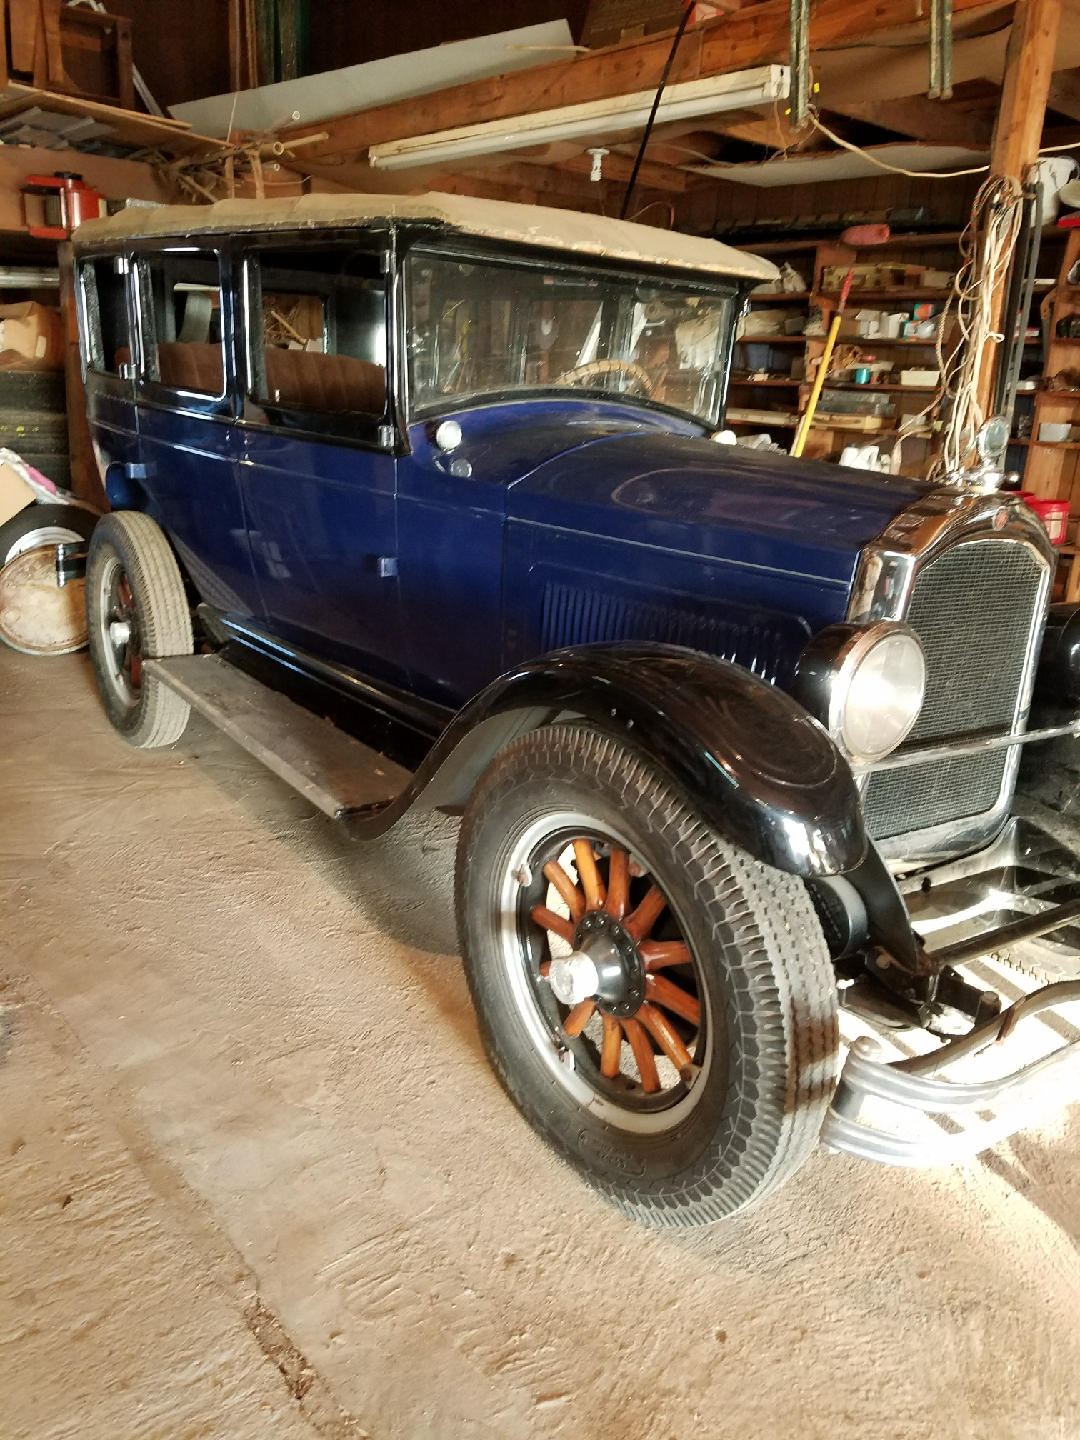 1926 Willys Touring Car Value - Cars For Sale - Antique Automobile ...